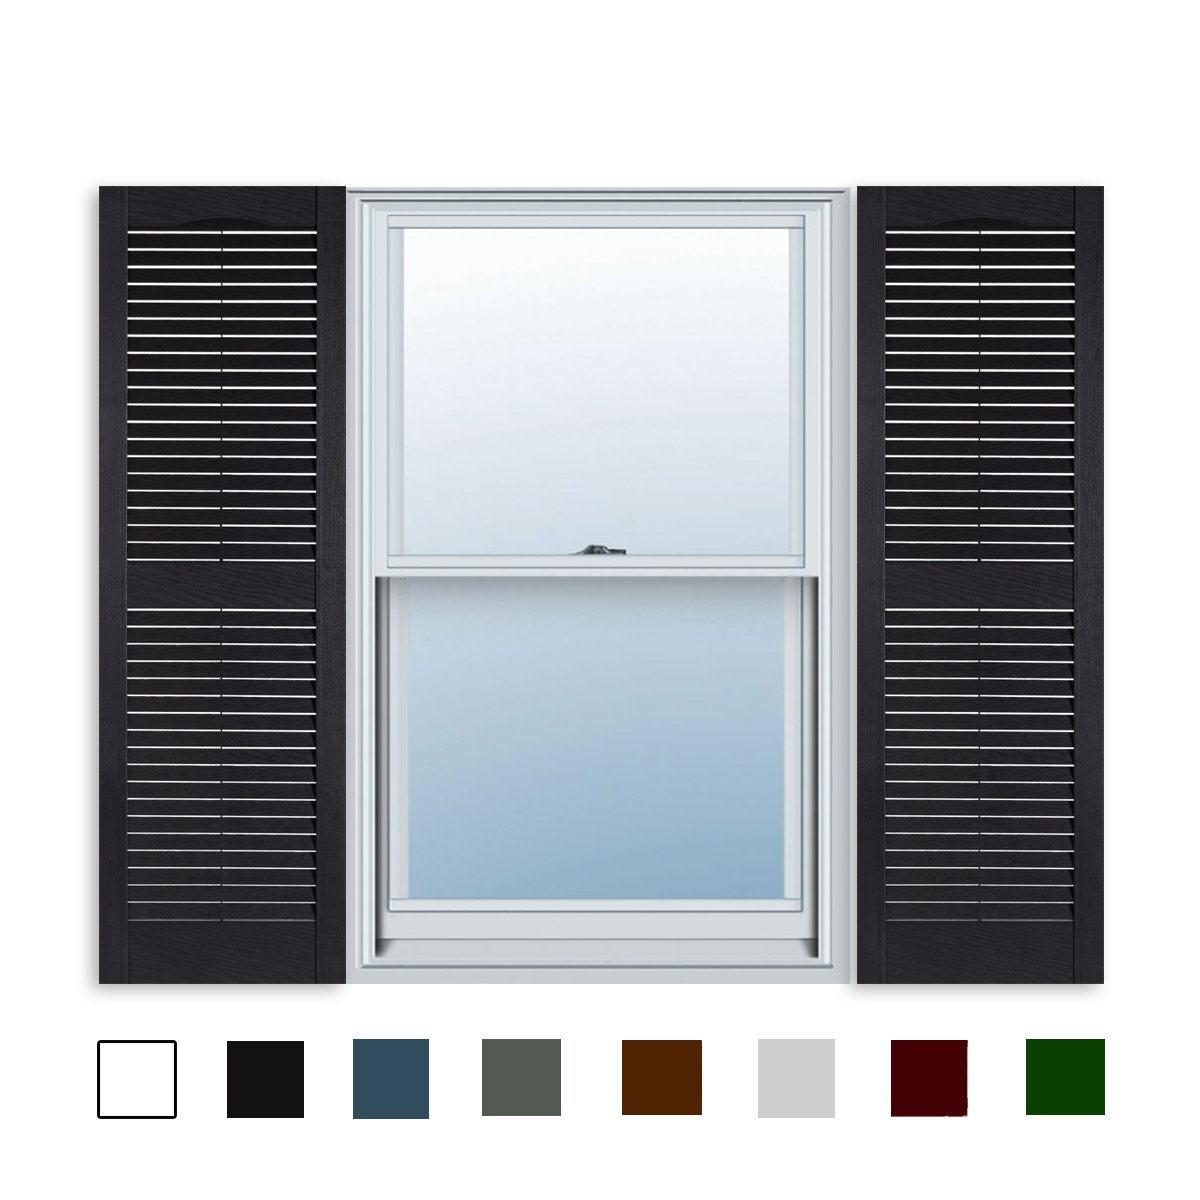 15 Inch x 47 Inch Standard Louver Exterior Vinyl Window Shutters, Black (Pair) by ExteriorSolutions.com